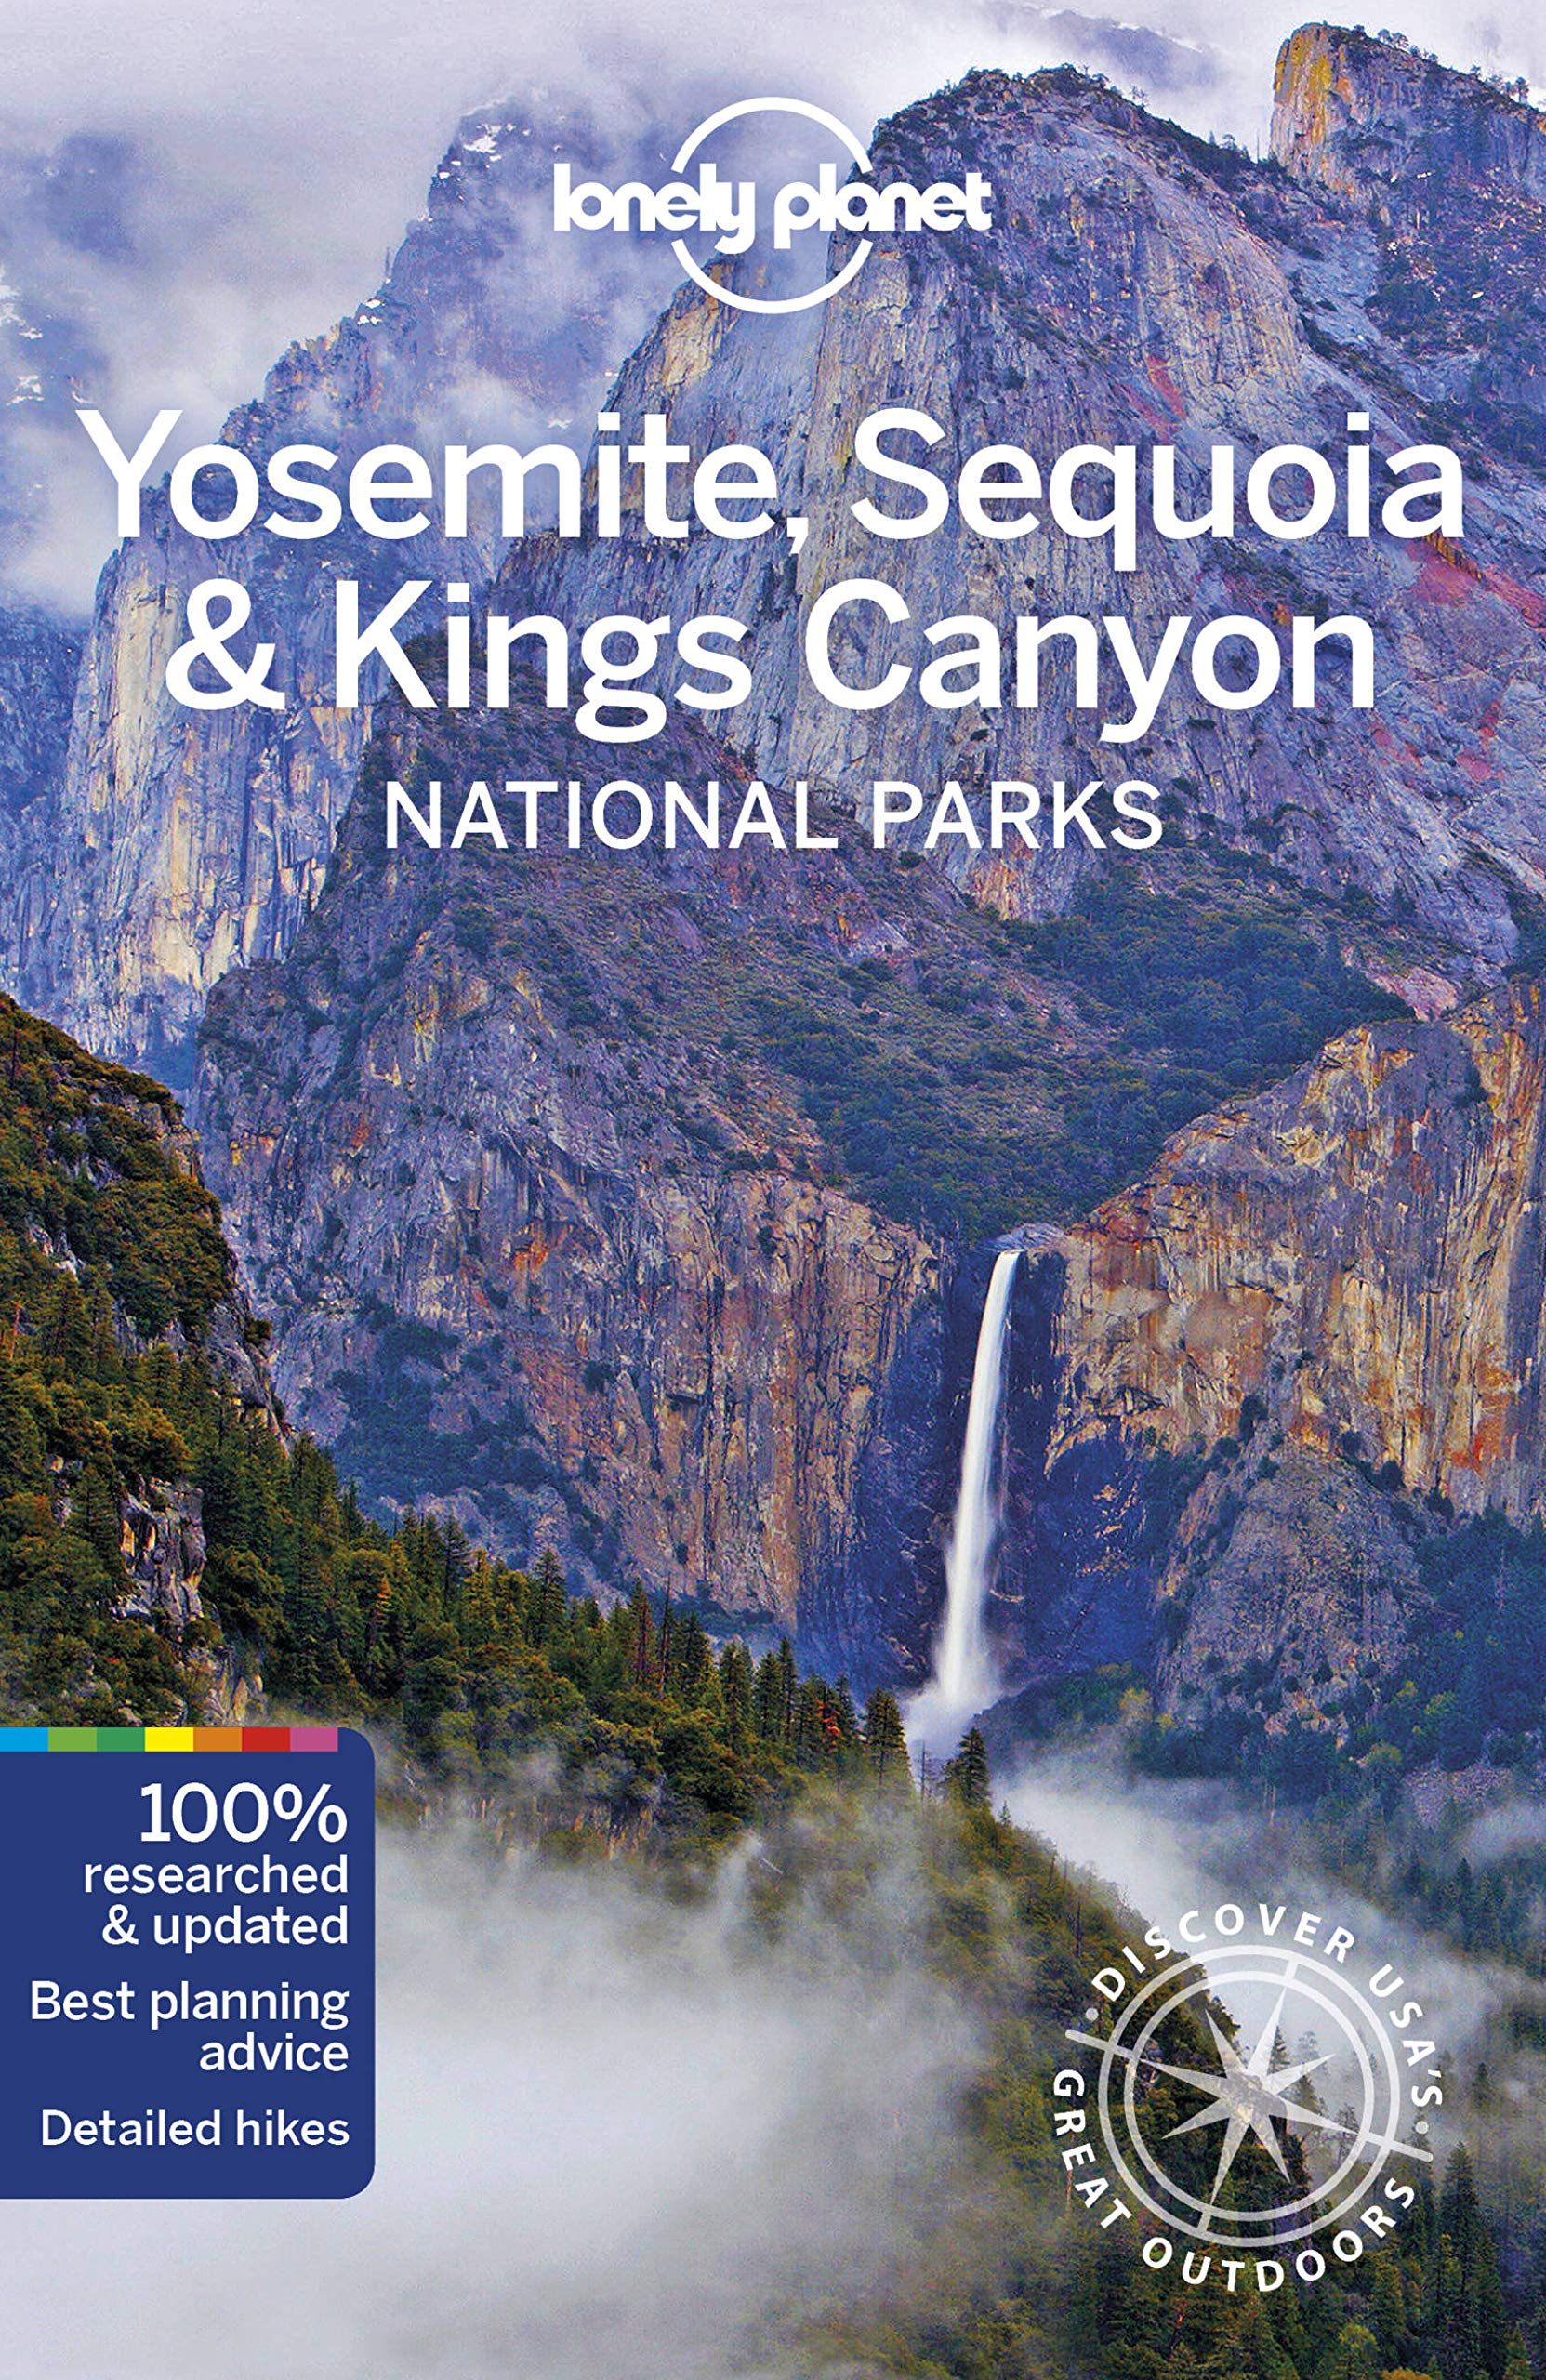 Cartina Yosemite National Park.Amazon It Lonely Planet Yosemite Sequoia Kings Canyon National Parks Lonely Planet Grosberg Michael Bremner Jade Libri In Altre Lingue